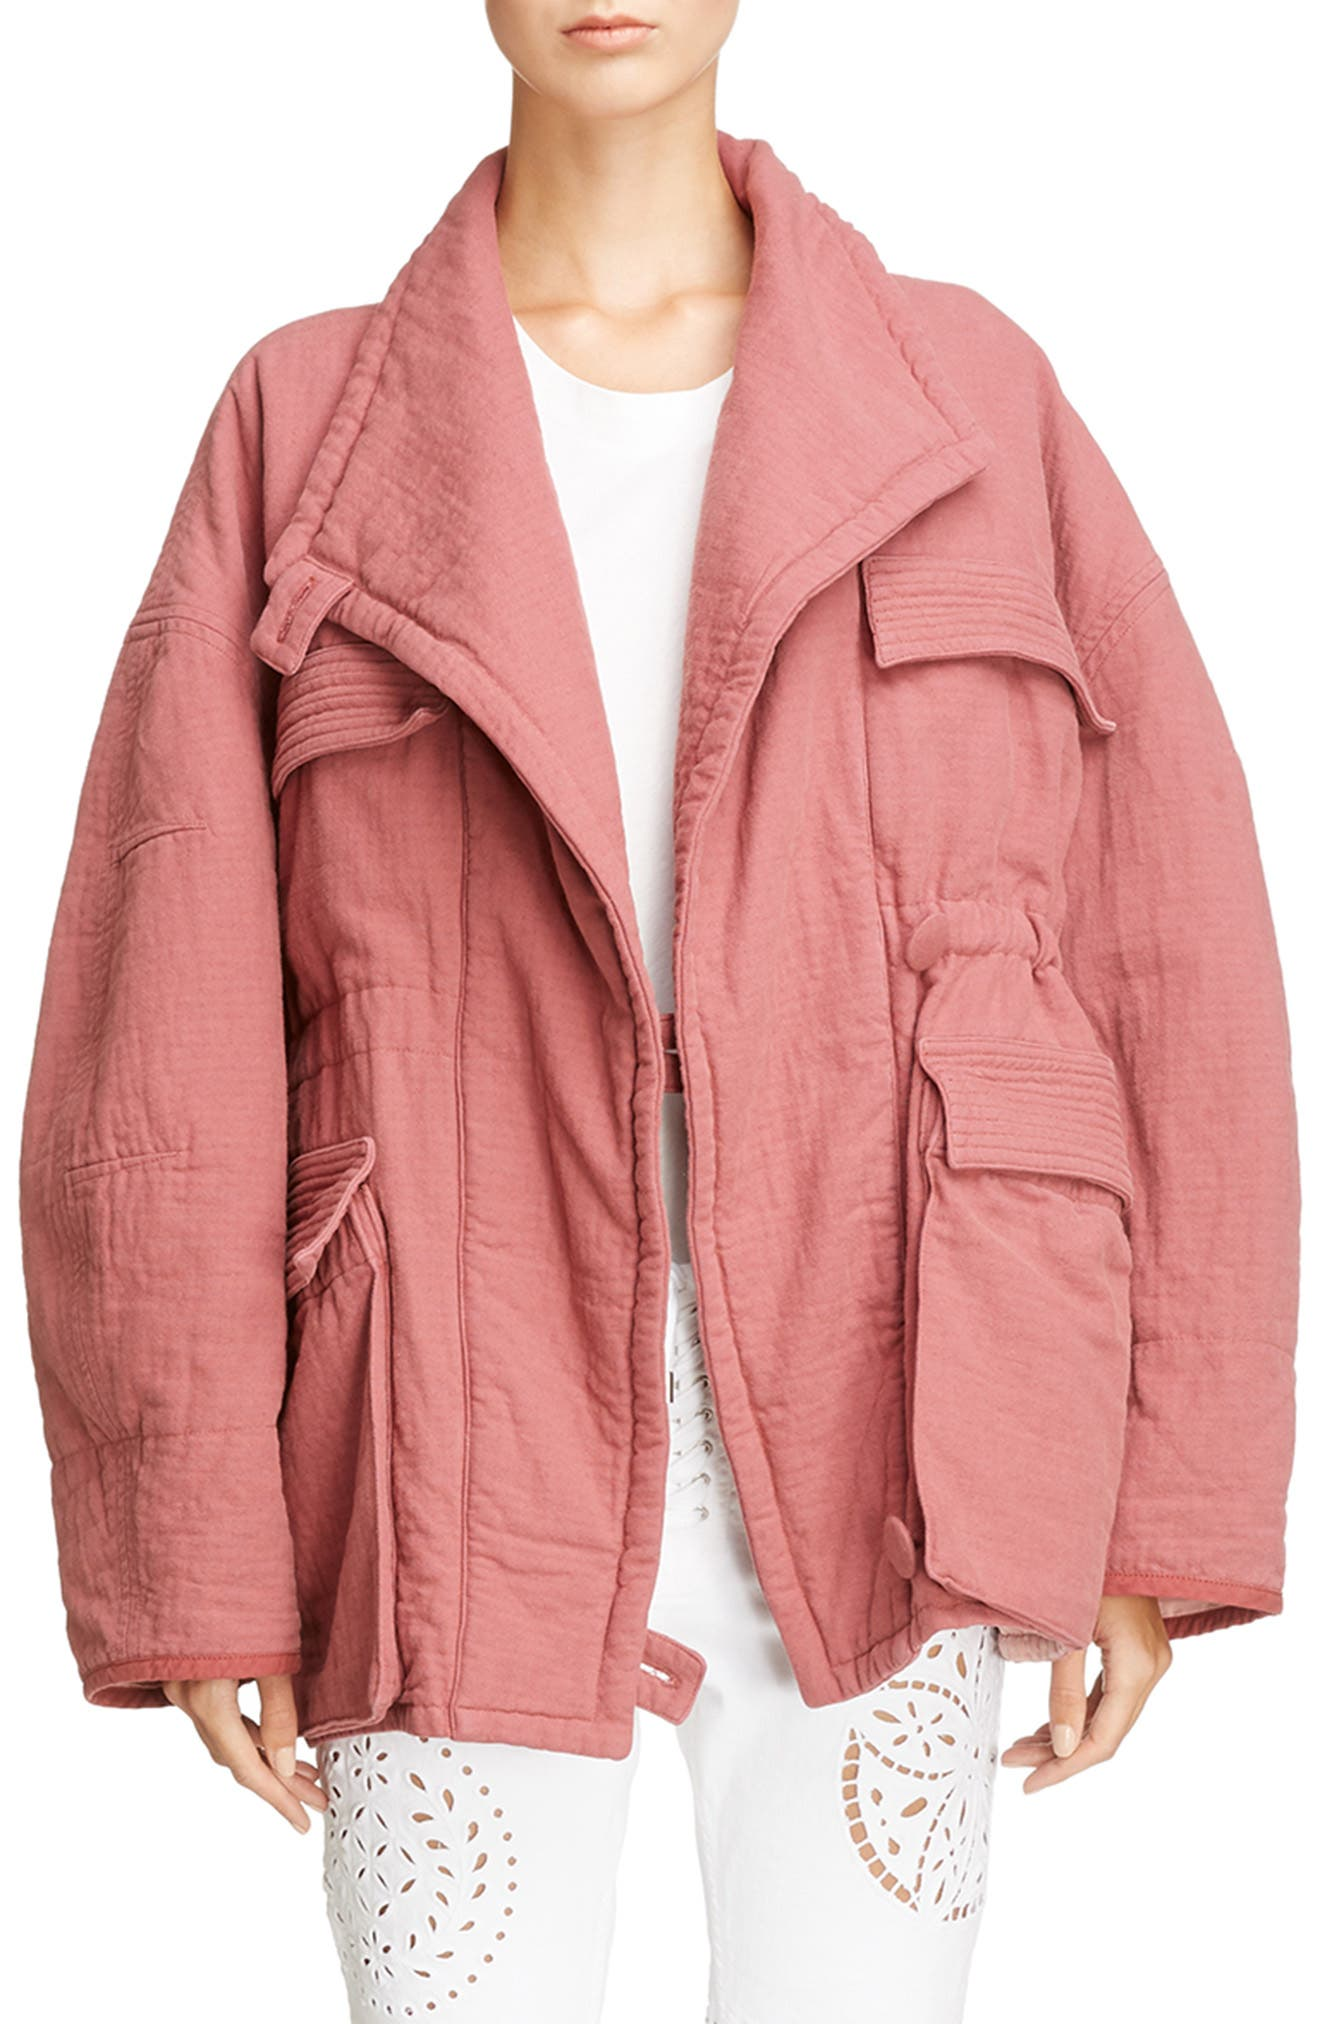 Oversize Textured Cotton Jacket,                         Main,                         color, Rosewood